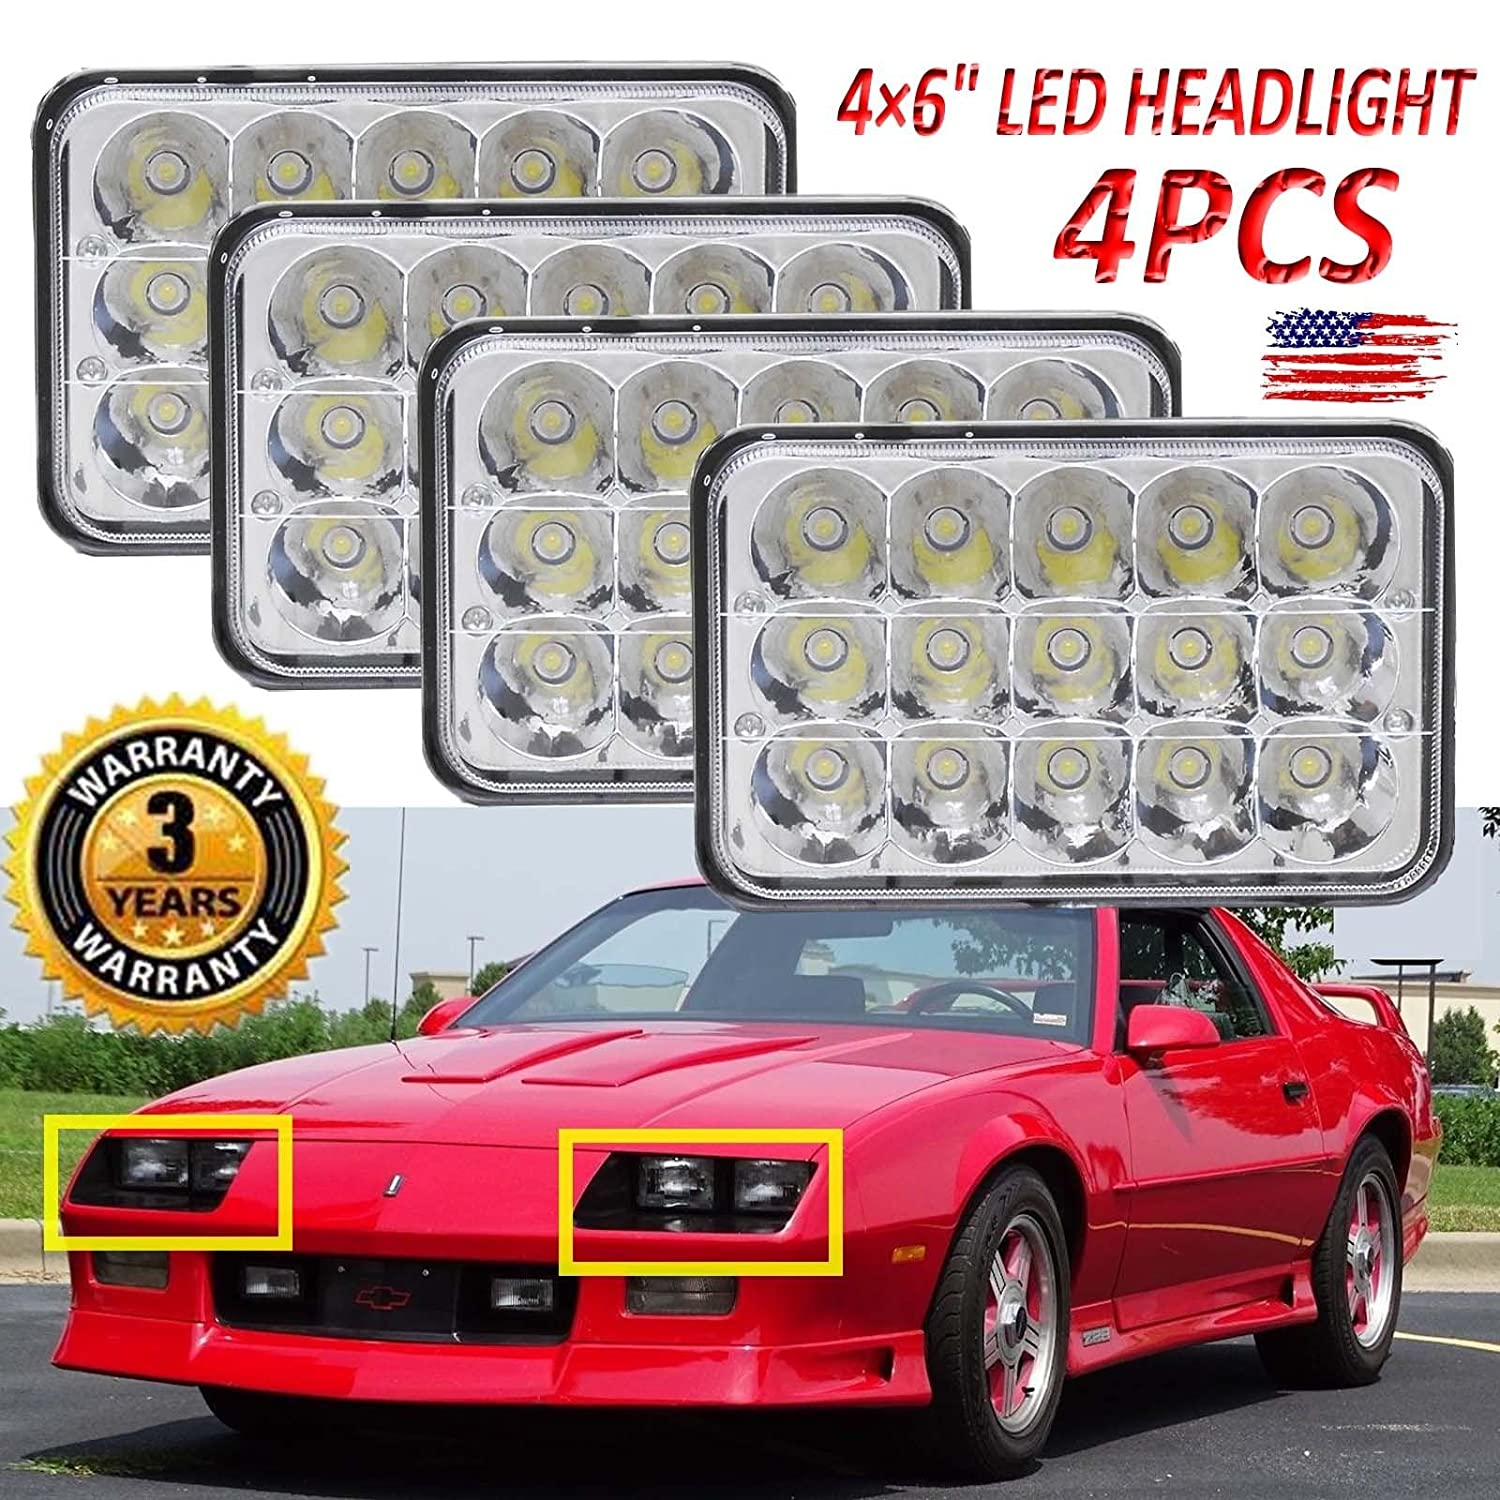 4x6 Rectangular Led Headlight For Chevrolet Chevy Camaro 1972 Cadillac Eldorado Wiring Diagram Plug Modification May Be Required 4pcs Super Power Bright Sealed High Low